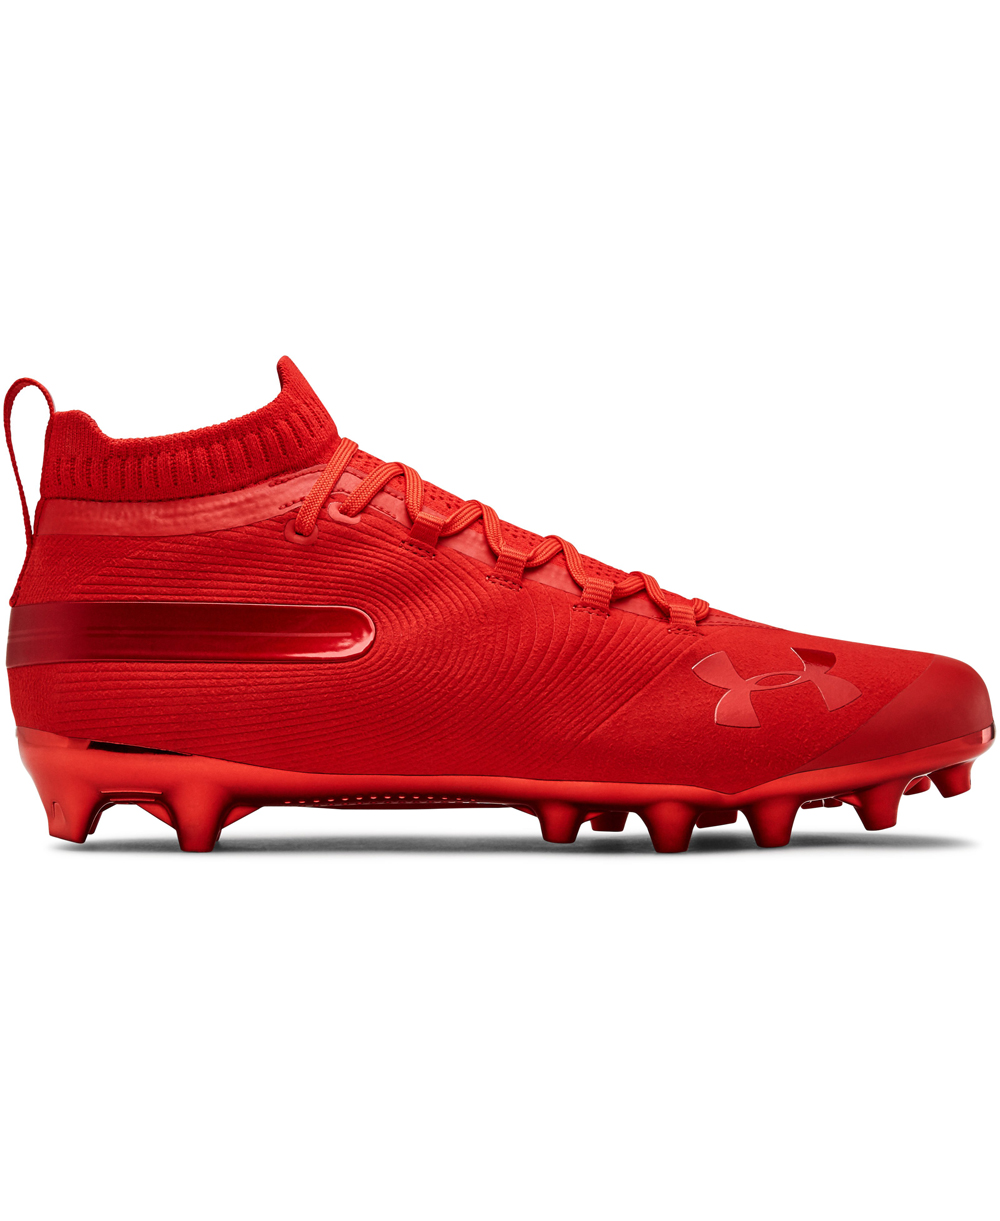 f43c907eaa8a Under Armour Men's Spotlight Suede MC American Football Cleats Red